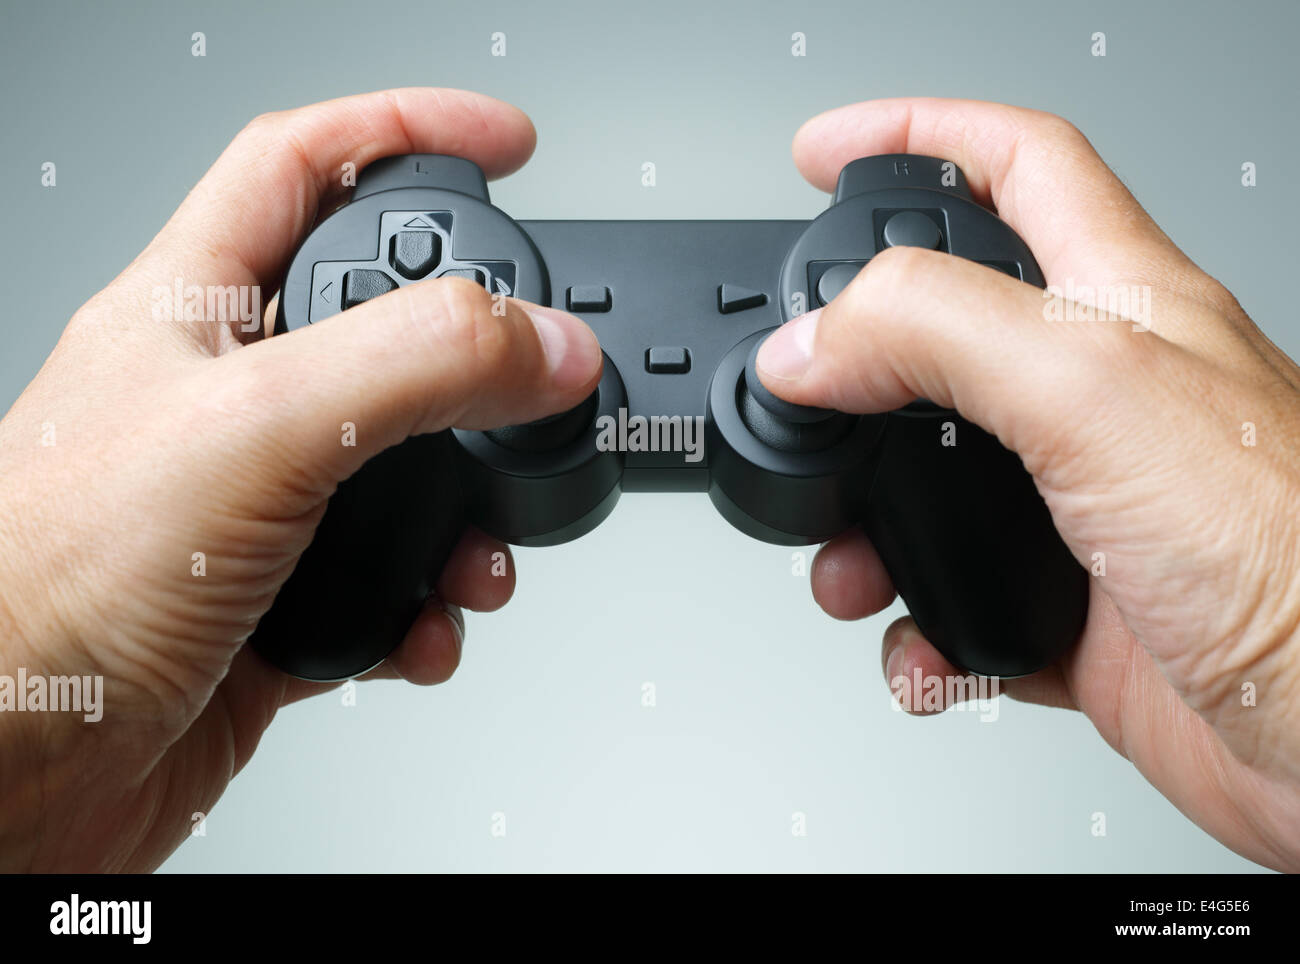 Game console controller - Stock Image